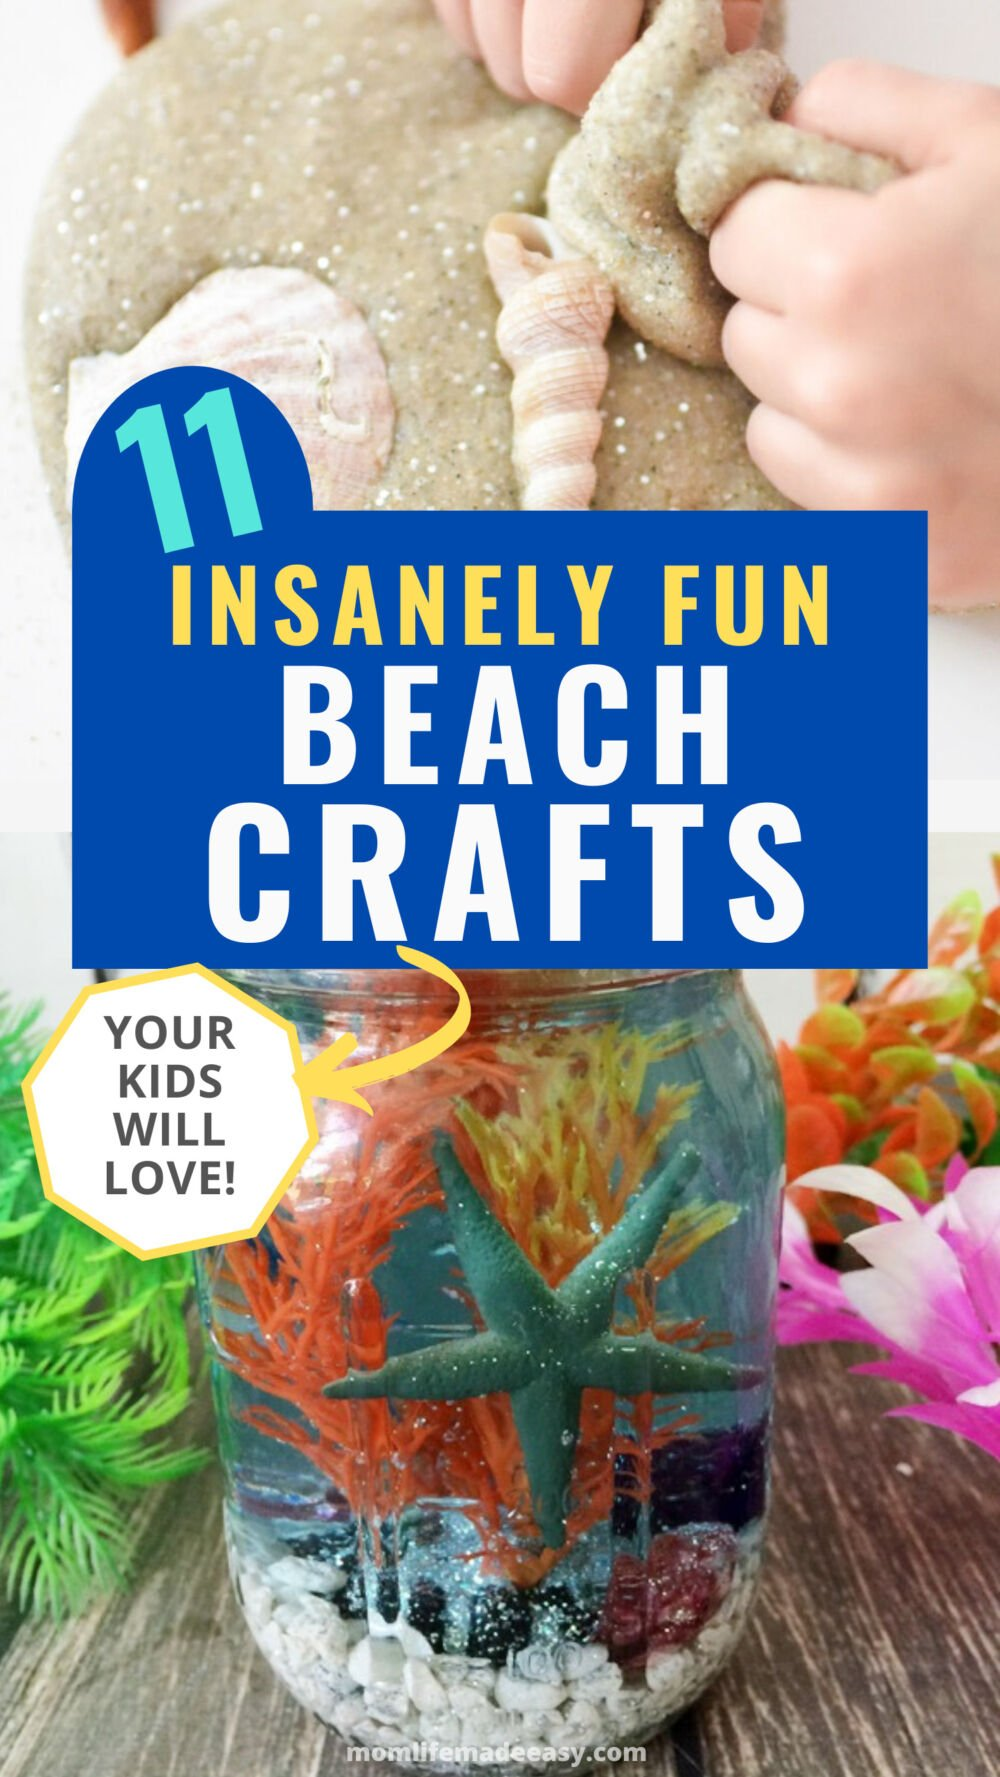 11 beach crafts for kids this summer promo image collage